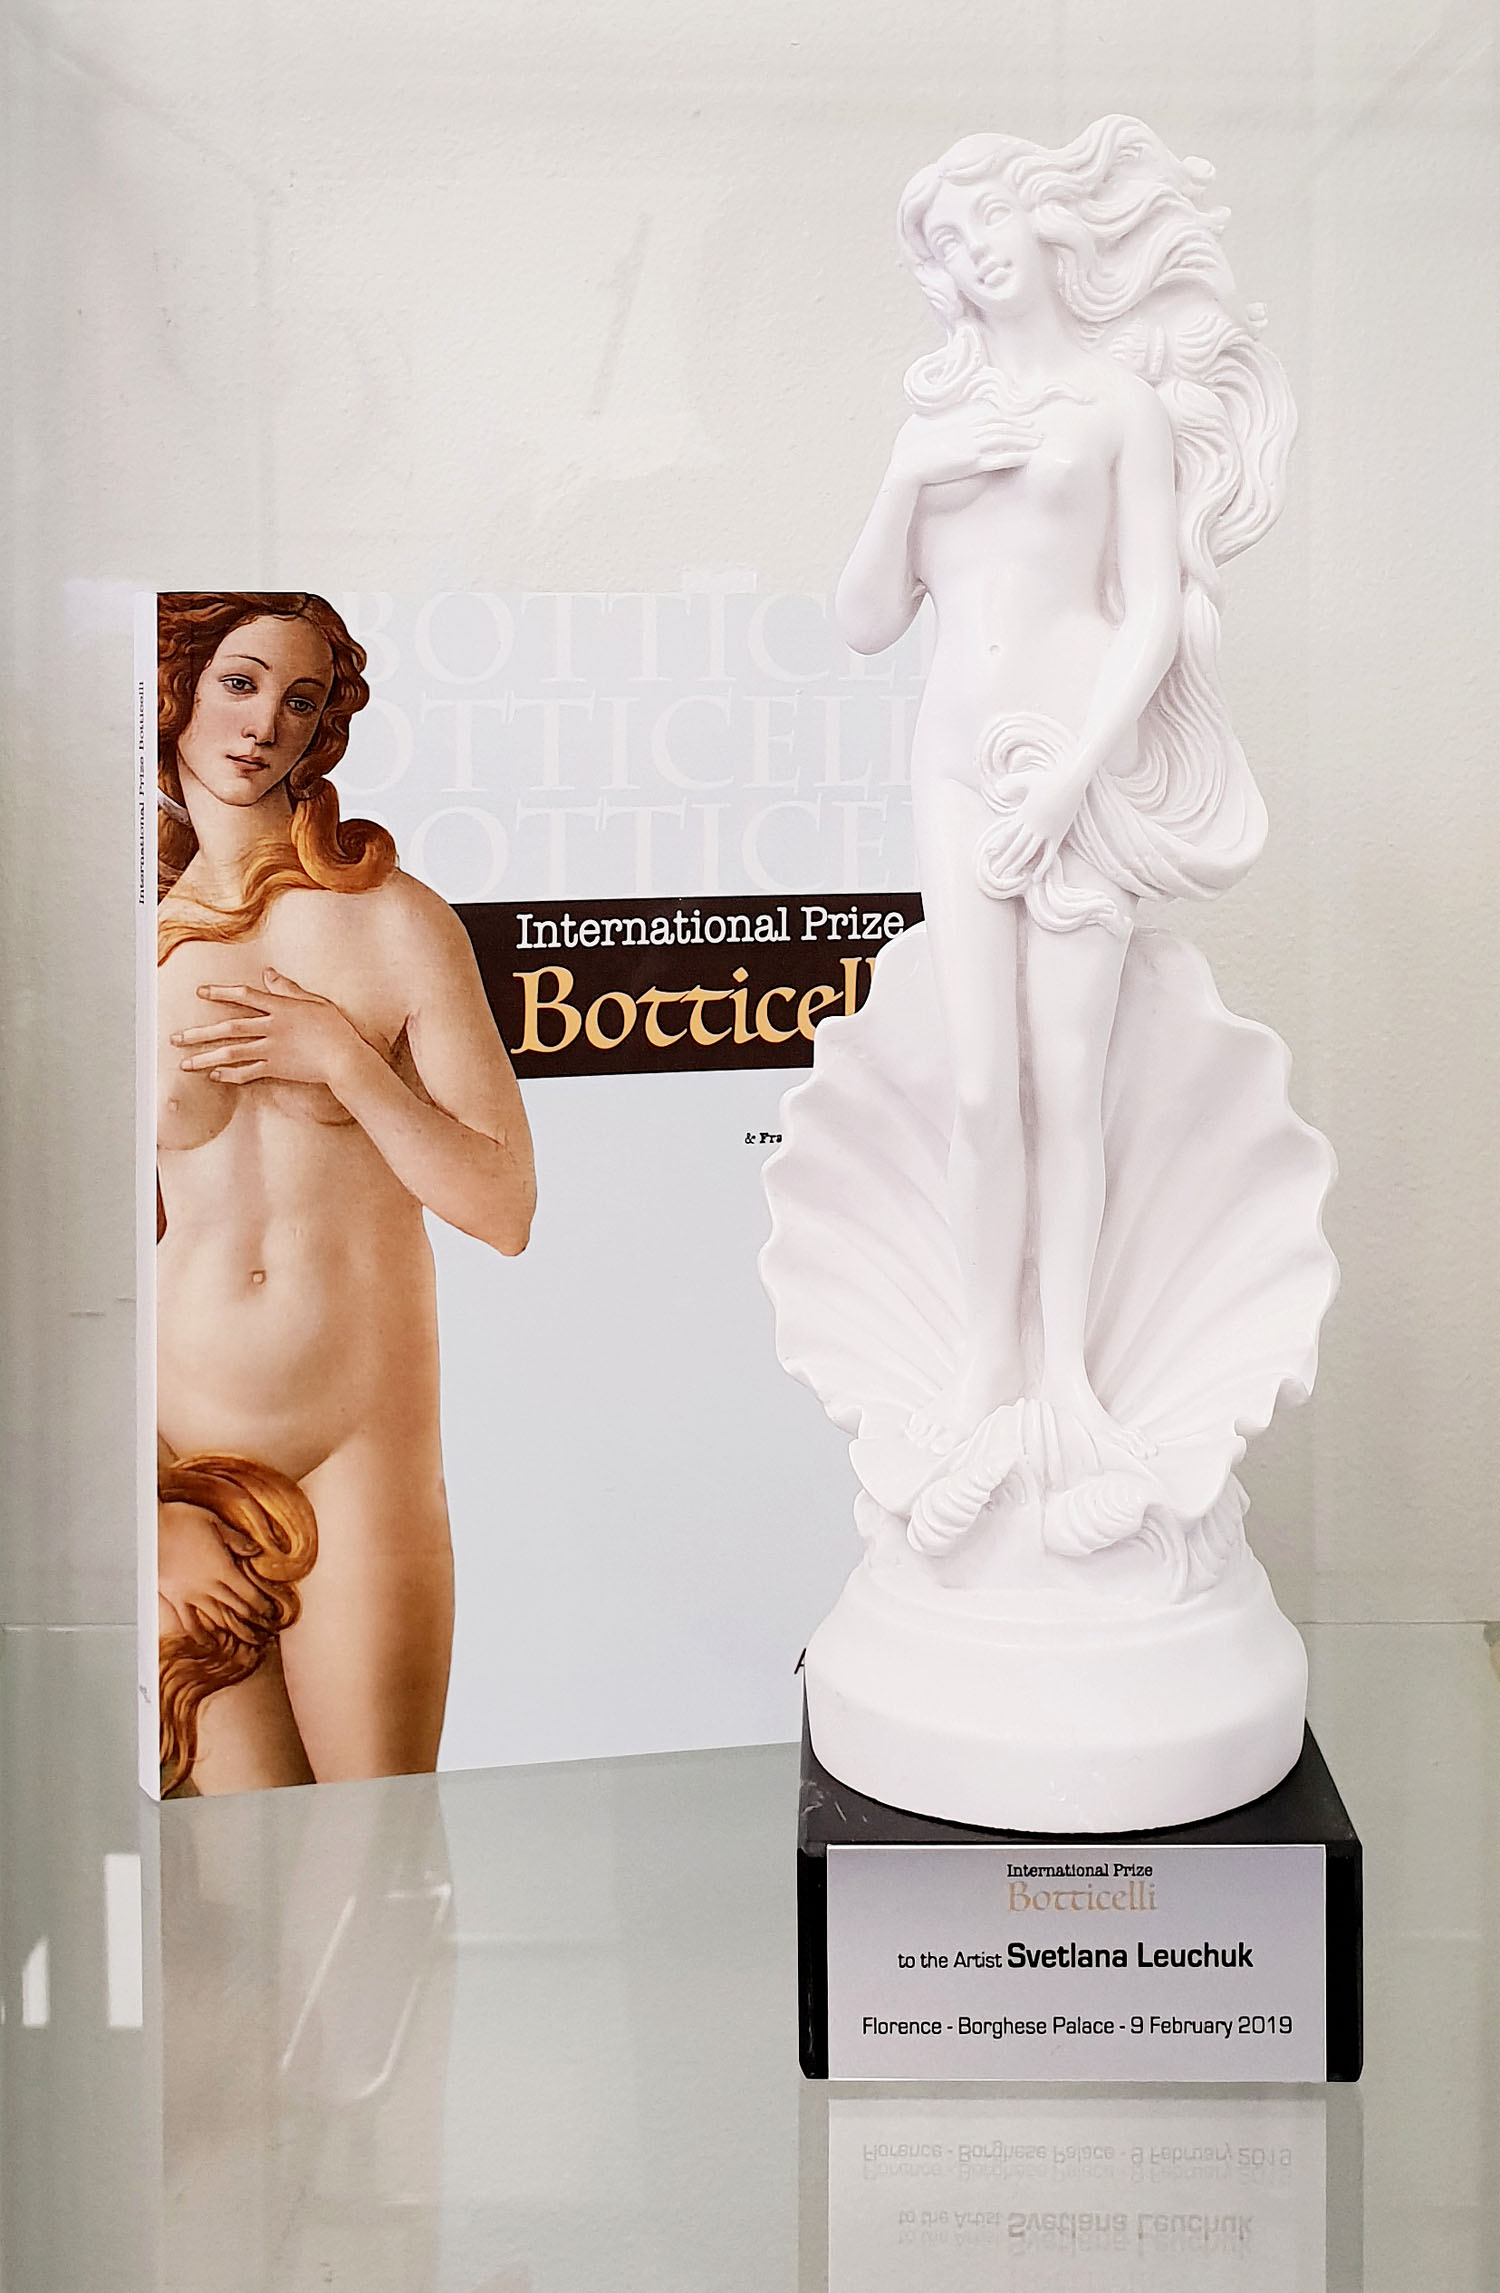 international-prize-botticelli-Lana-Leuchuk